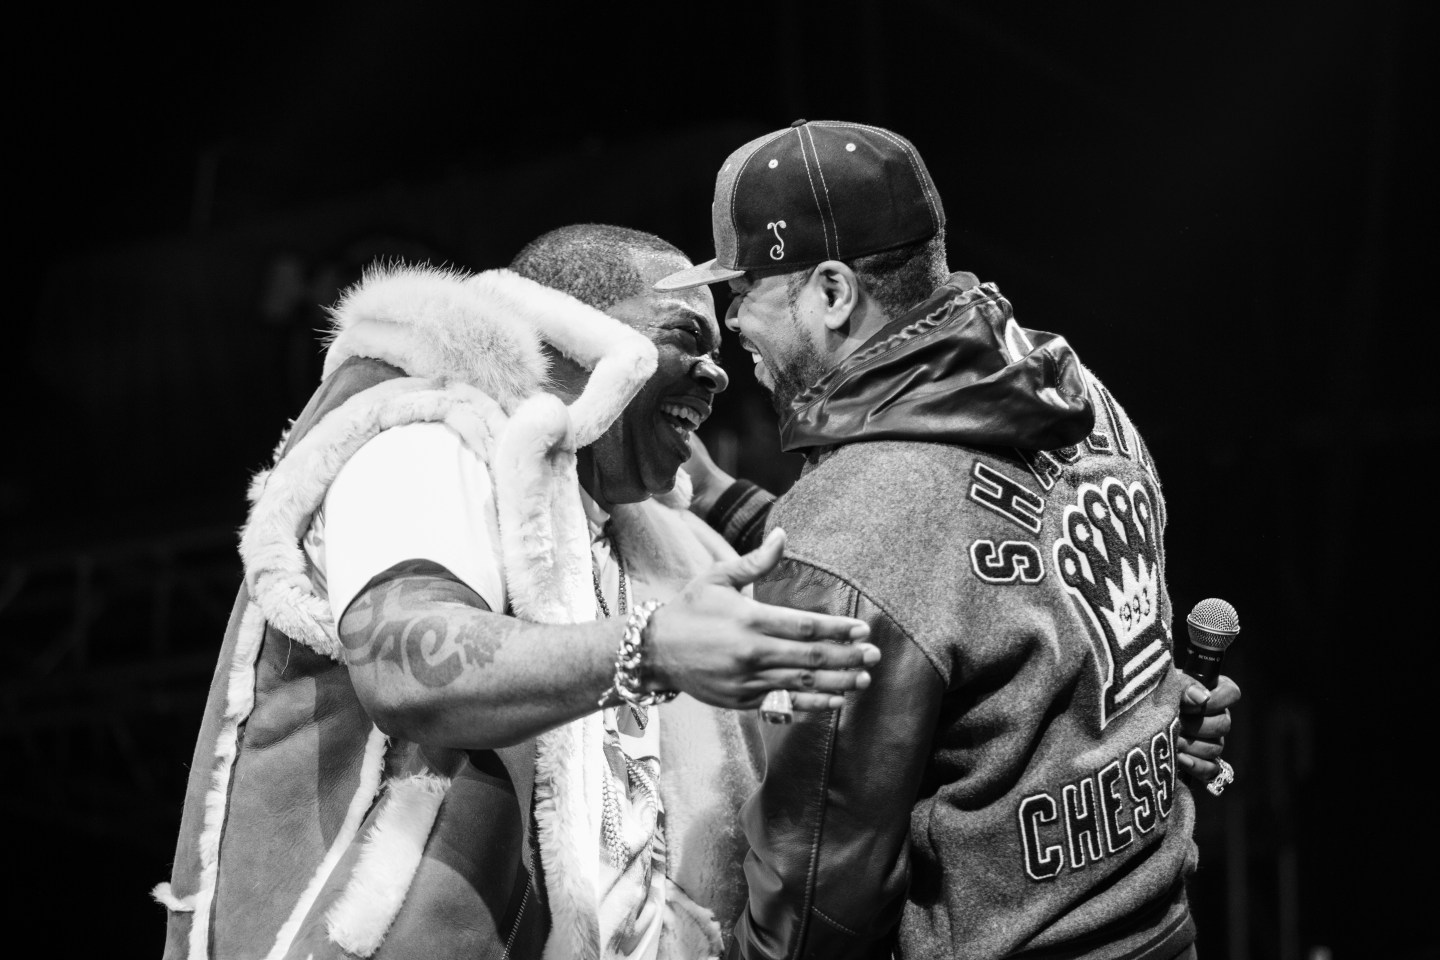 Busta Rhymes And Friends Celebrate At Hot For The Holidays